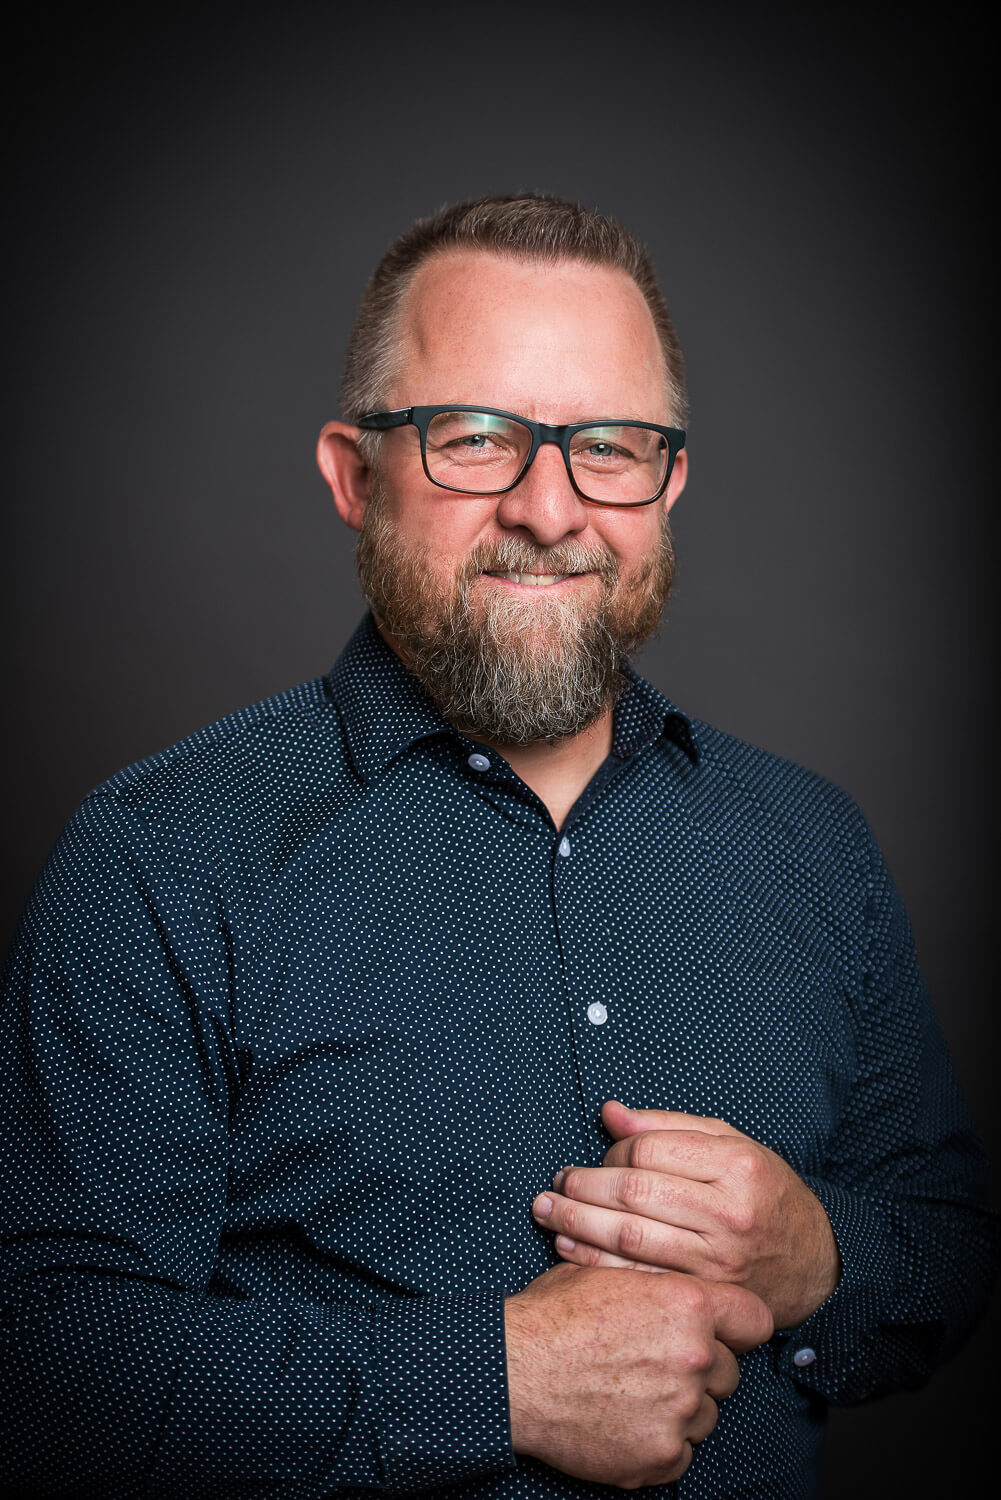 Headshot on guy on Black Background in Durango Colorado. Photo by Allison Ragsdale Photography